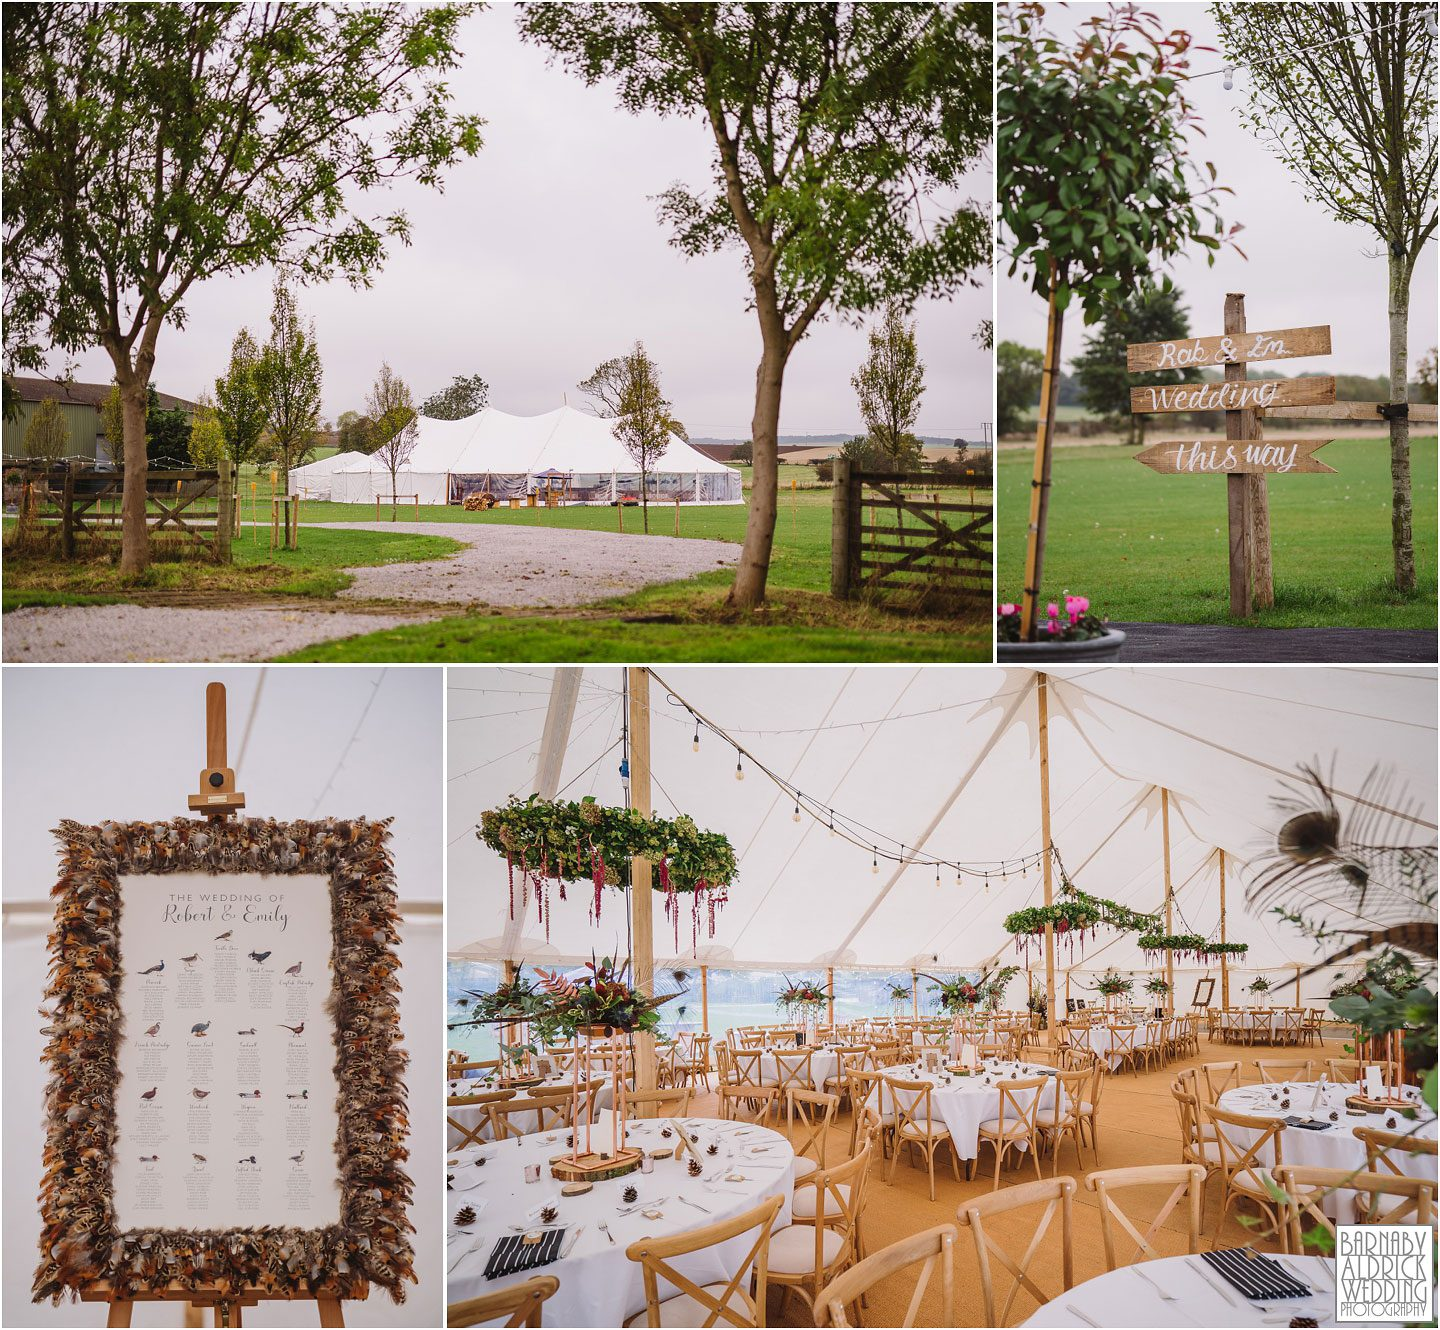 Yorkshire Garden Marquee Wedding Photo, Pole marquee yorkshire Wedding Photography, Yorkshire Farm Marquee Wedding pictures, Wedding Photographer Yorkshire